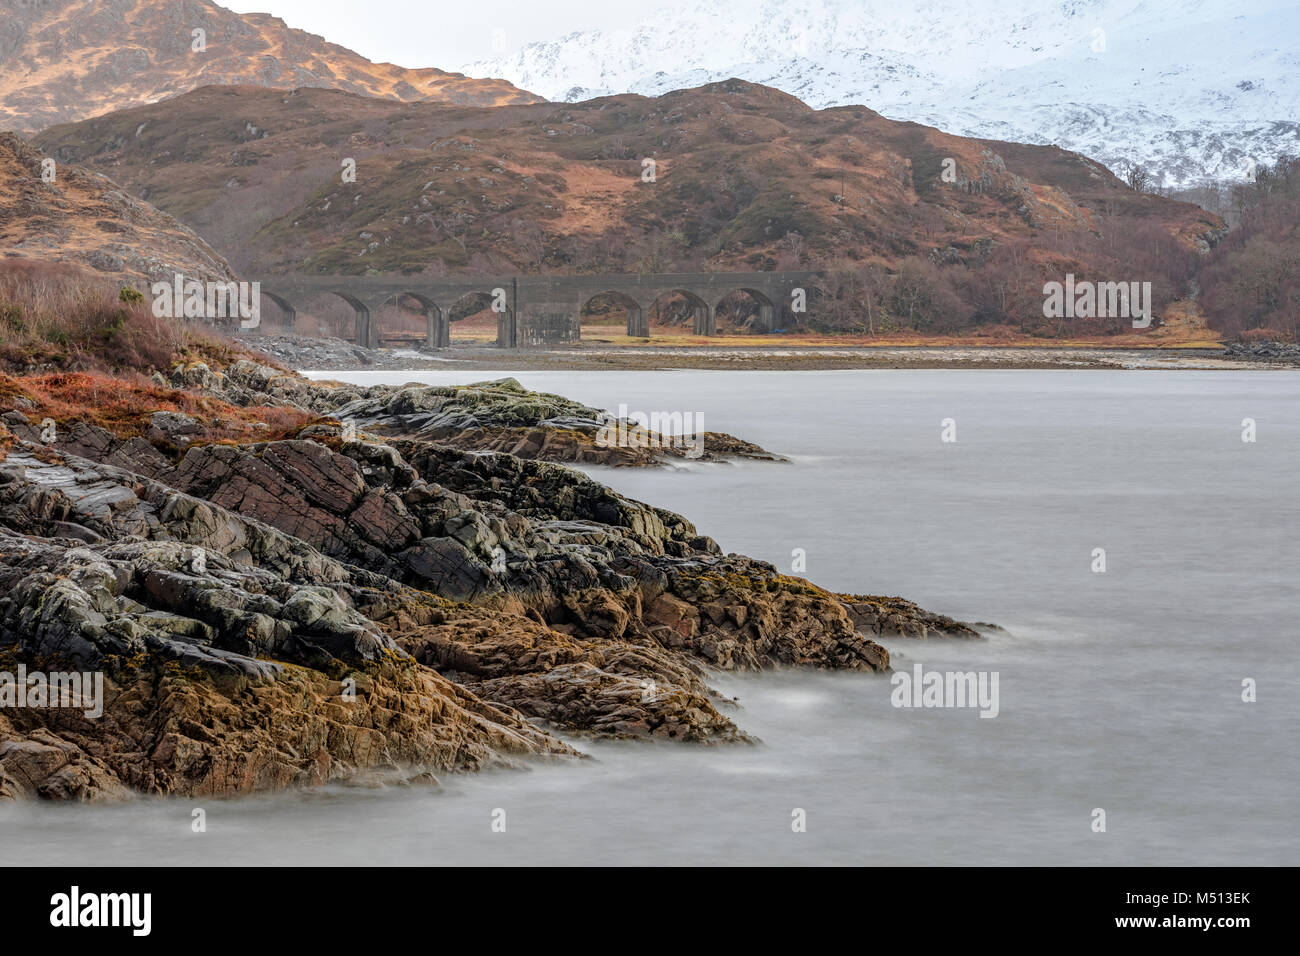 Loch nan Uamh, Arisaig, Highlands, Scotland Stock Photo